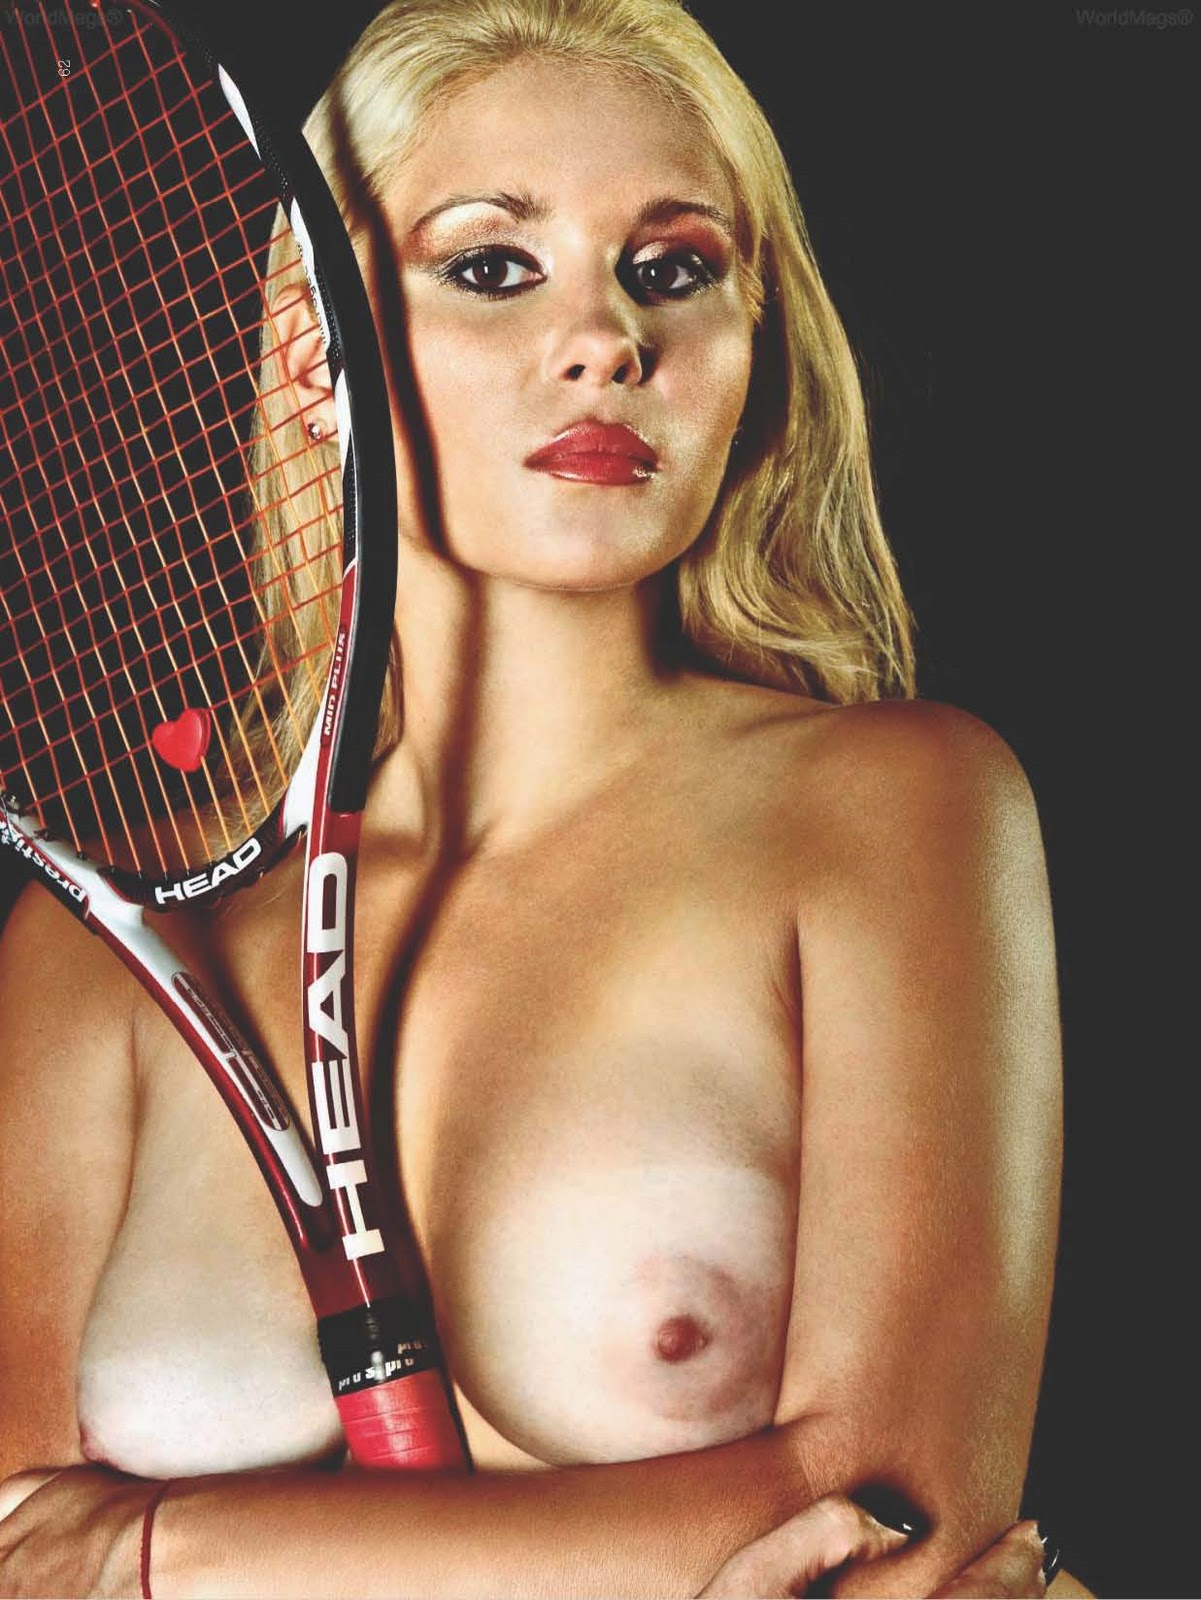 Wta Hotties Hot Shot Karolina Jovanovic Naked For -4573